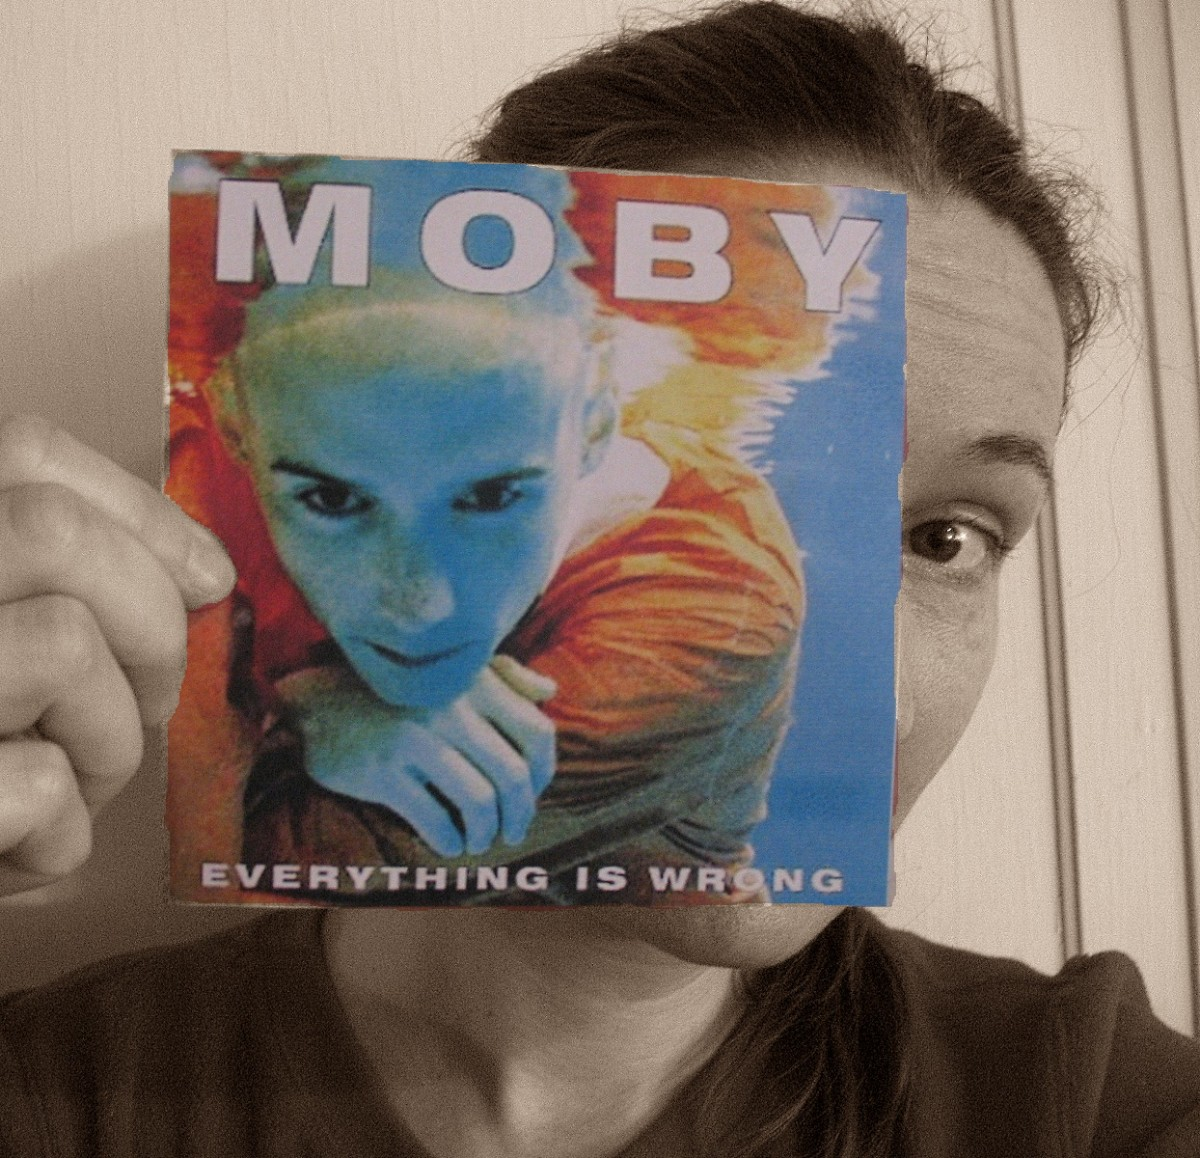 Moby's essays changed my life.